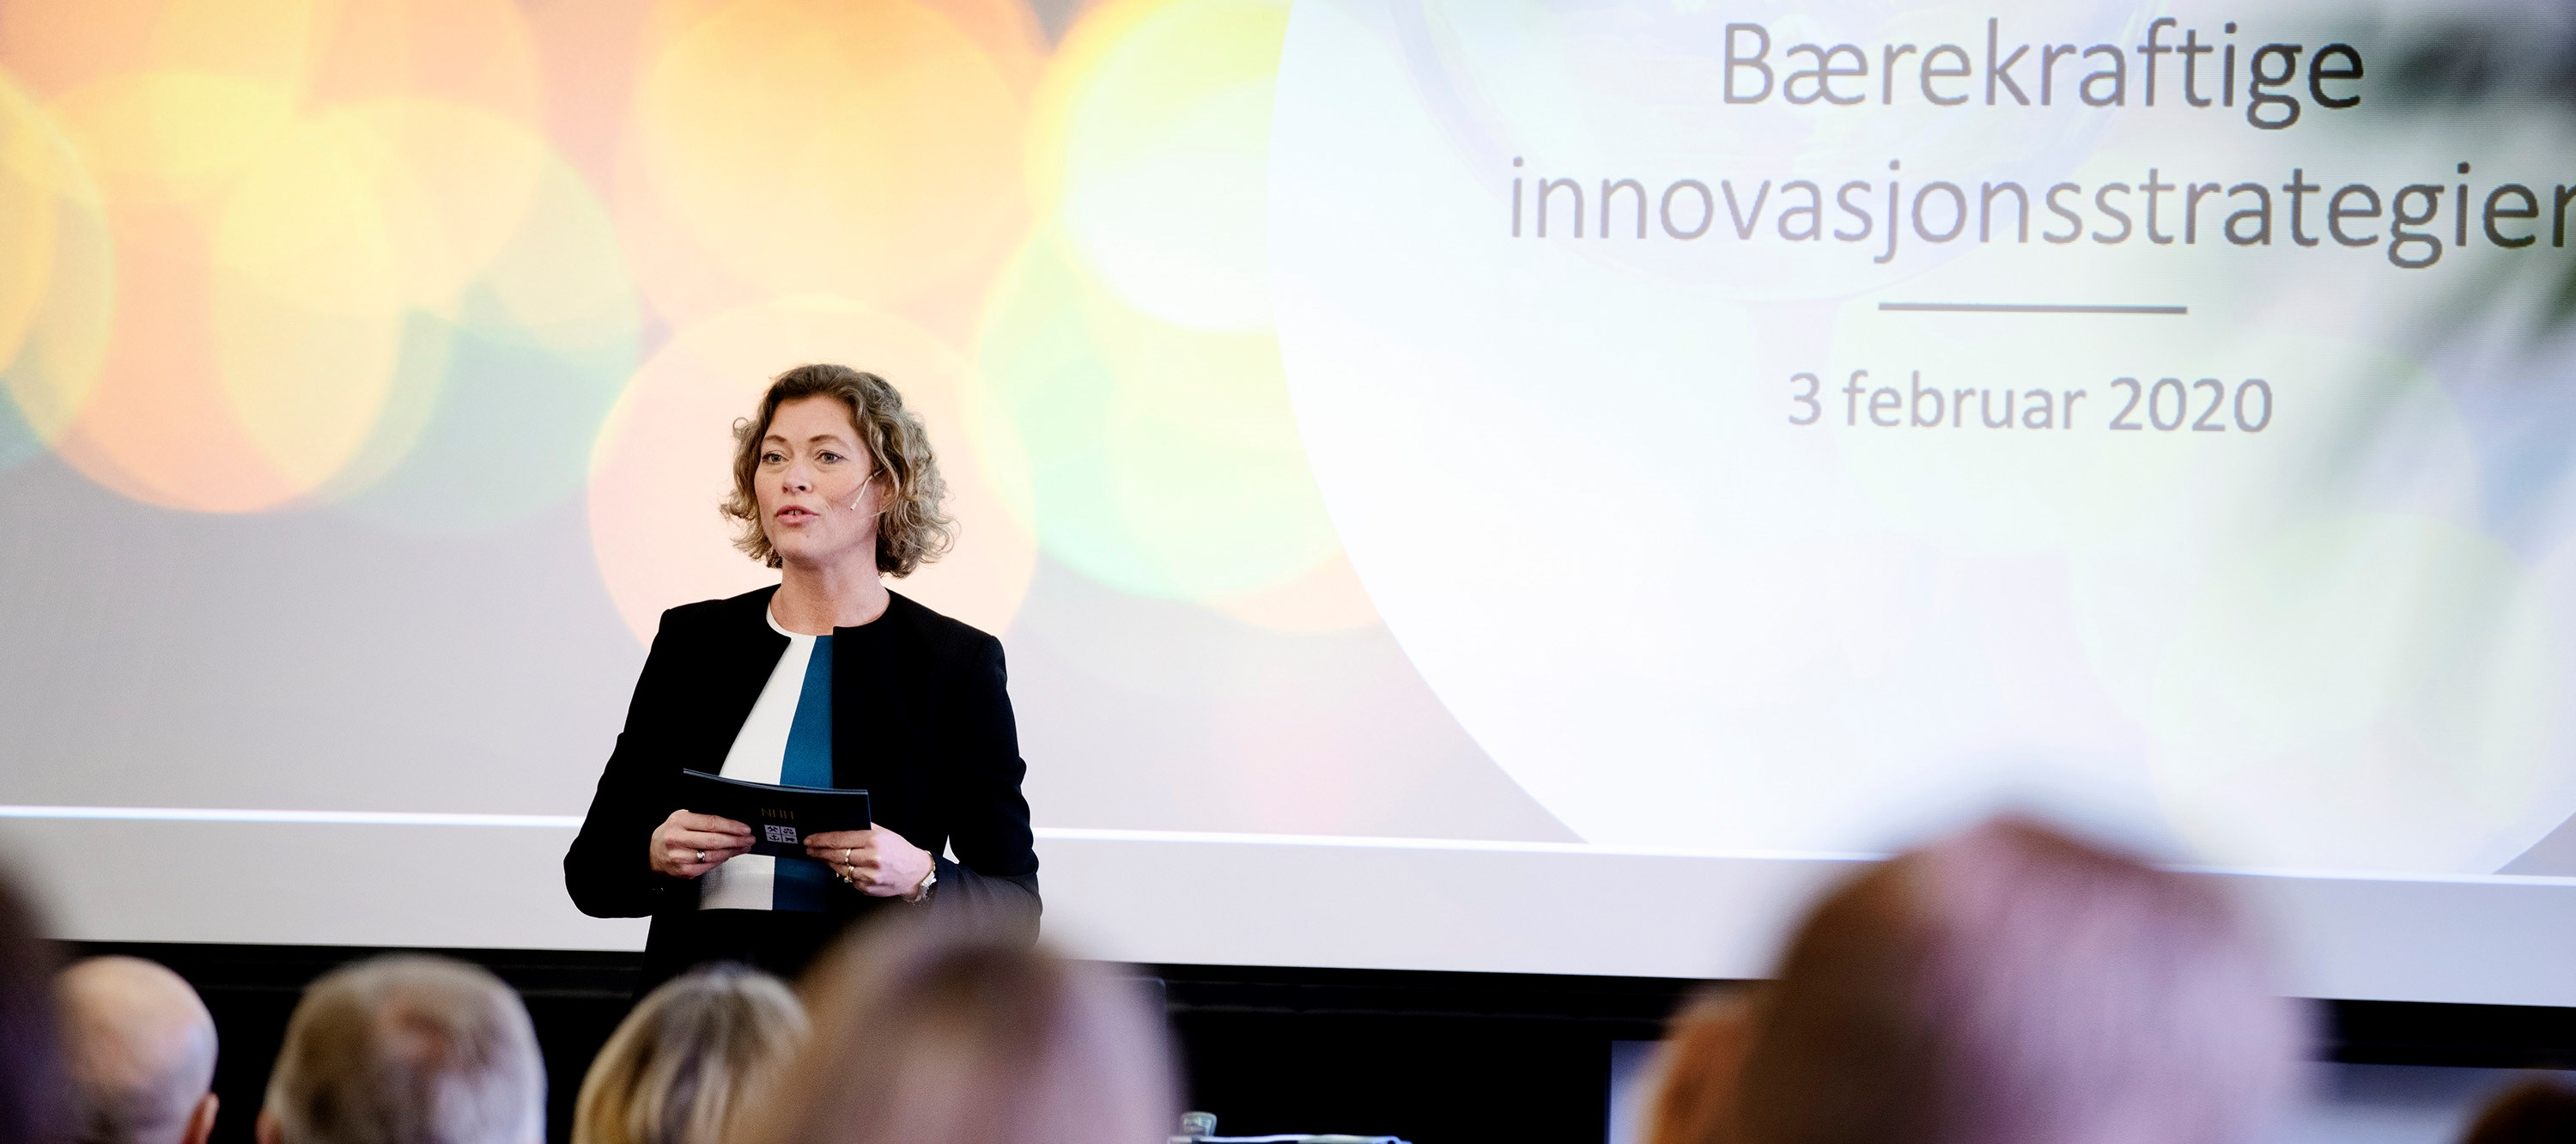 Therese E. Sverdrup, Vice Rector for Innovation and Development. Photo: Siv Dolmen